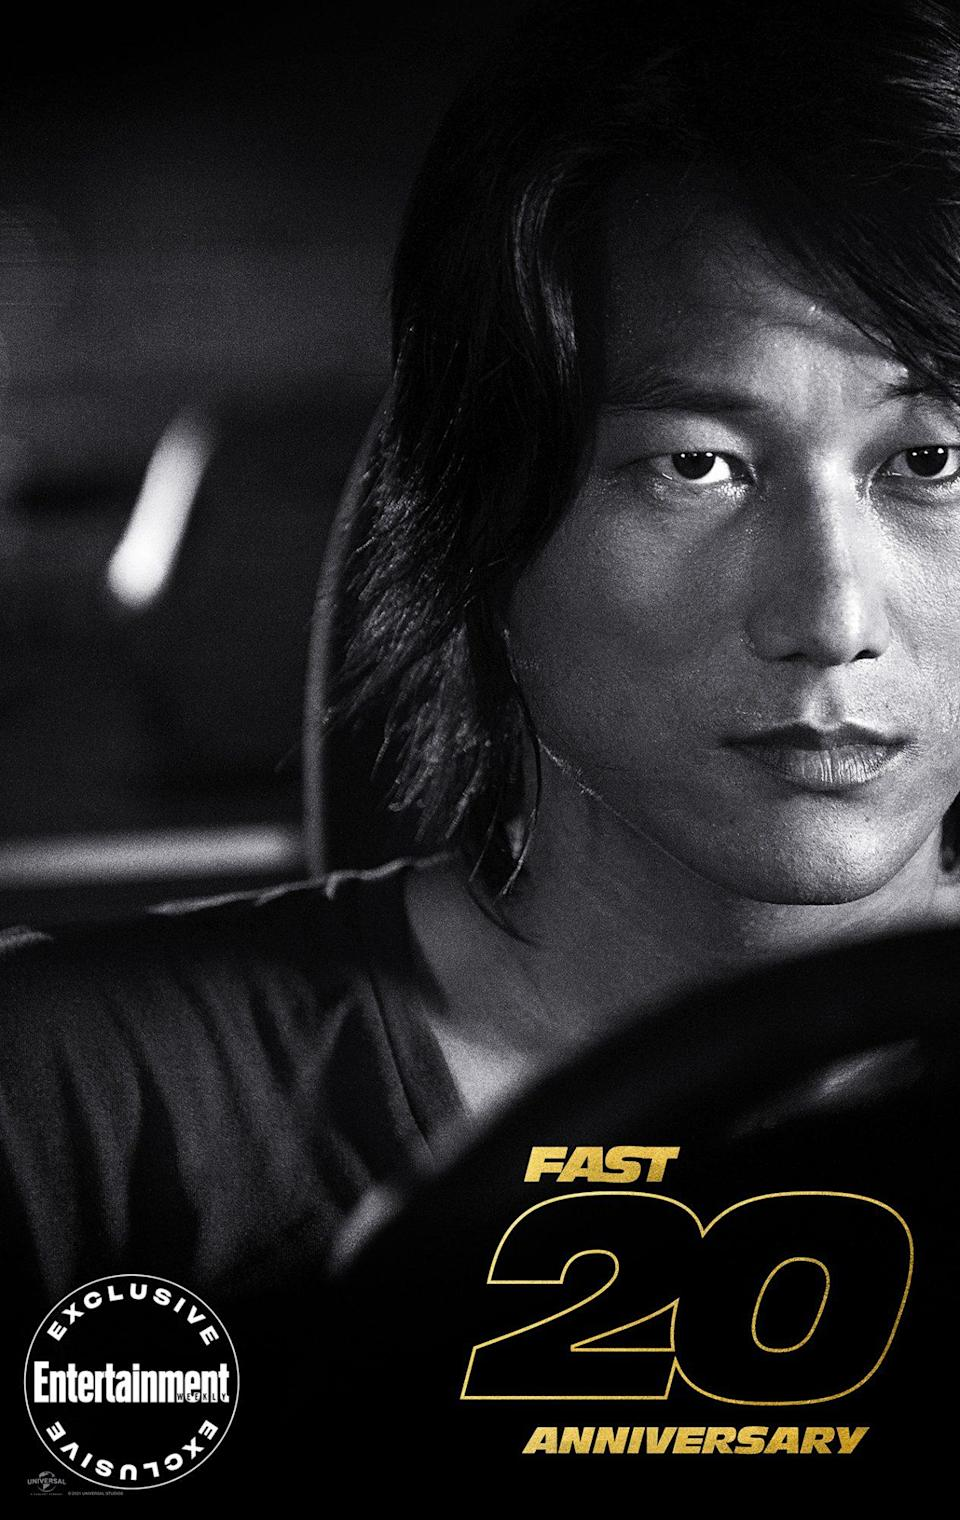 """<p>""""It's just Han,"""" <a href=""""https://ew.com/movies/f9-sung-kang-justin-lin-han-interview/"""" rel=""""nofollow noopener"""" target=""""_blank"""" data-ylk=""""slk:director Justin Lin recently told EW"""" class=""""link rapid-noclick-resp"""">director Justin Lin recently told EW</a>, clarifying the name of the beloved character that <a href=""""https://ew.com/tag/sung-kang/"""" rel=""""nofollow noopener"""" target=""""_blank"""" data-ylk=""""slk:Sung Kang"""" class=""""link rapid-noclick-resp"""">Sung Kang</a> first originated in the duo's low-budget drama <em>Better Luck Tomorrow</em>. Since then, the actor has appeared in five <em>Fast</em> films, bringing Han back from the dead two different times, most recently thanks to the """"justice for Han"""" campaign. """"There's something deeper behind 'justice for Han' than just bringing a character back,"""" <a href=""""https://ew.com/movies/f9-sung-kang-justin-lin-han-interview/"""" rel=""""nofollow noopener"""" target=""""_blank"""" data-ylk=""""slk:Kang told EW"""" class=""""link rapid-noclick-resp"""">Kang told EW</a>. """"That's a gimmick. What I eventually connected with was that this campaign was started because there was some feeling that just didn't sit right in your stomach, right? This guy, Han, happens to be your boy, your friend, your buddy, your older brother, part of the family. And even within Hollywood make-believe, when you discard a character and that history is eliminated, there's something wrong with that.""""</p>"""